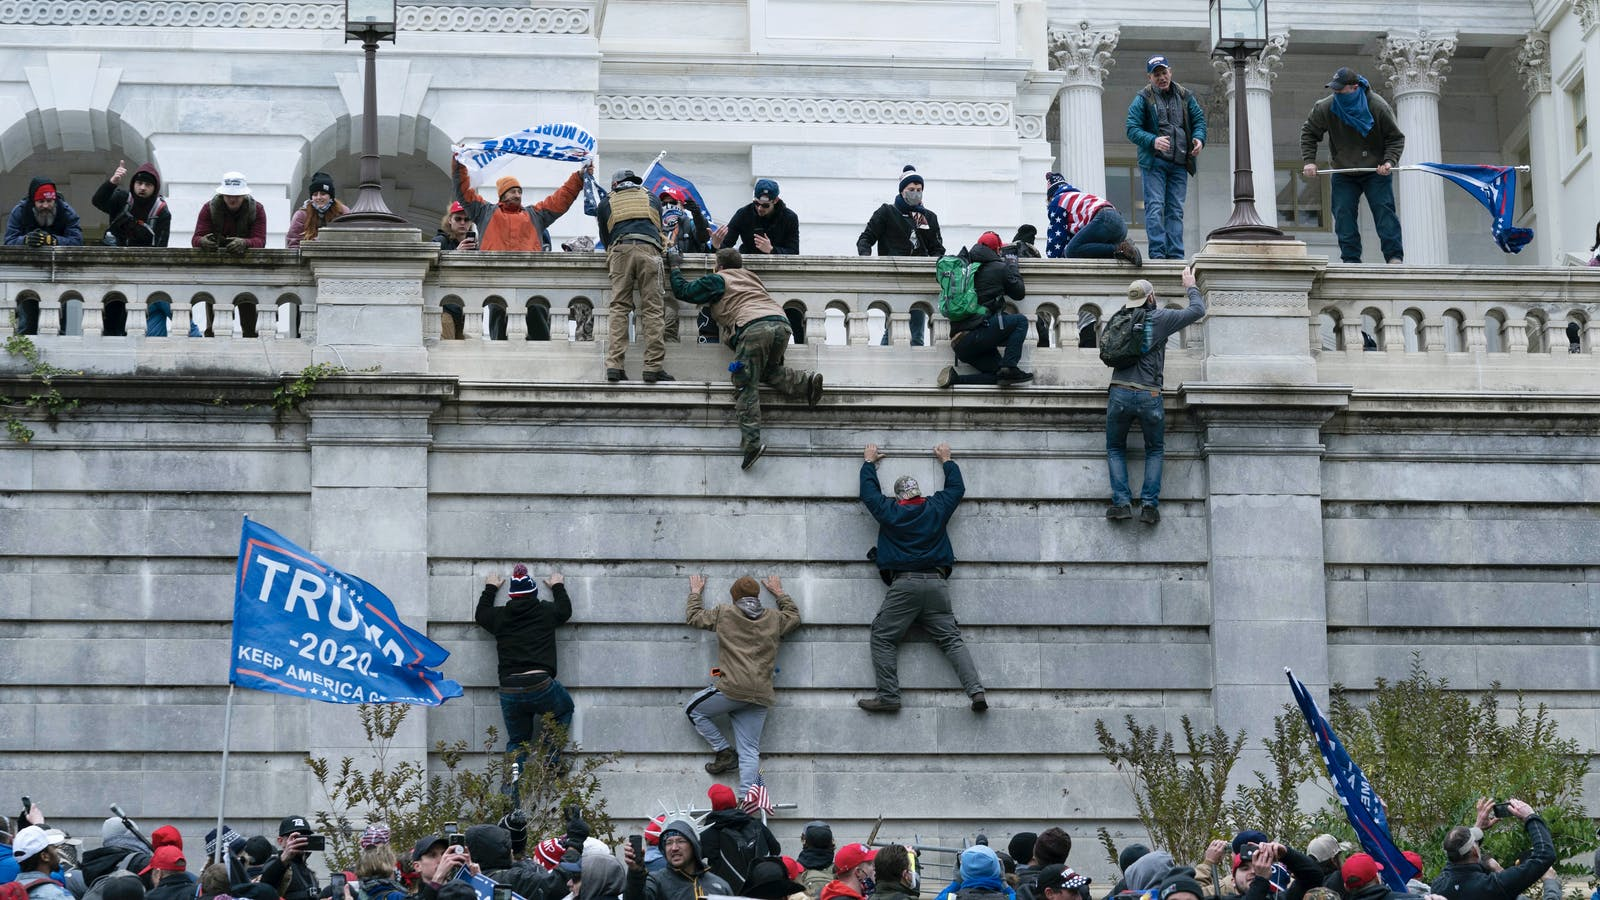 Protesters storming the Capitol building. Photo by AP